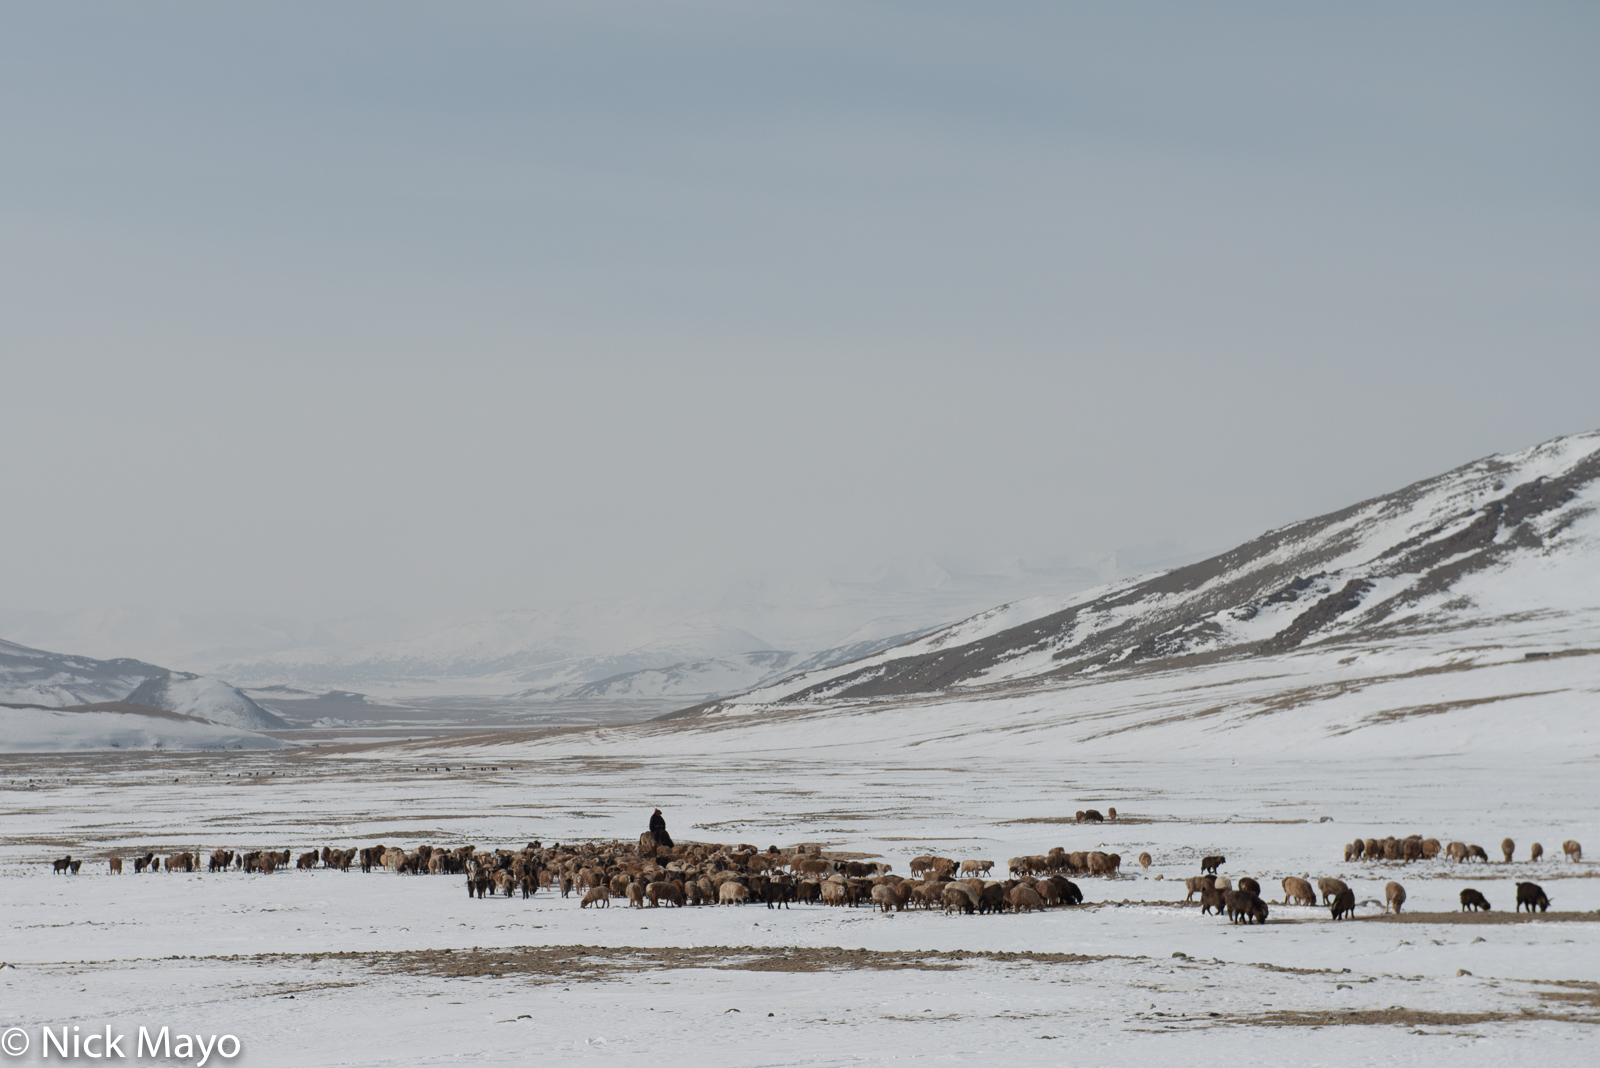 Bayan-Ölgii, Goat, Horse, Kazakh, Mongolia, Sheep, photo